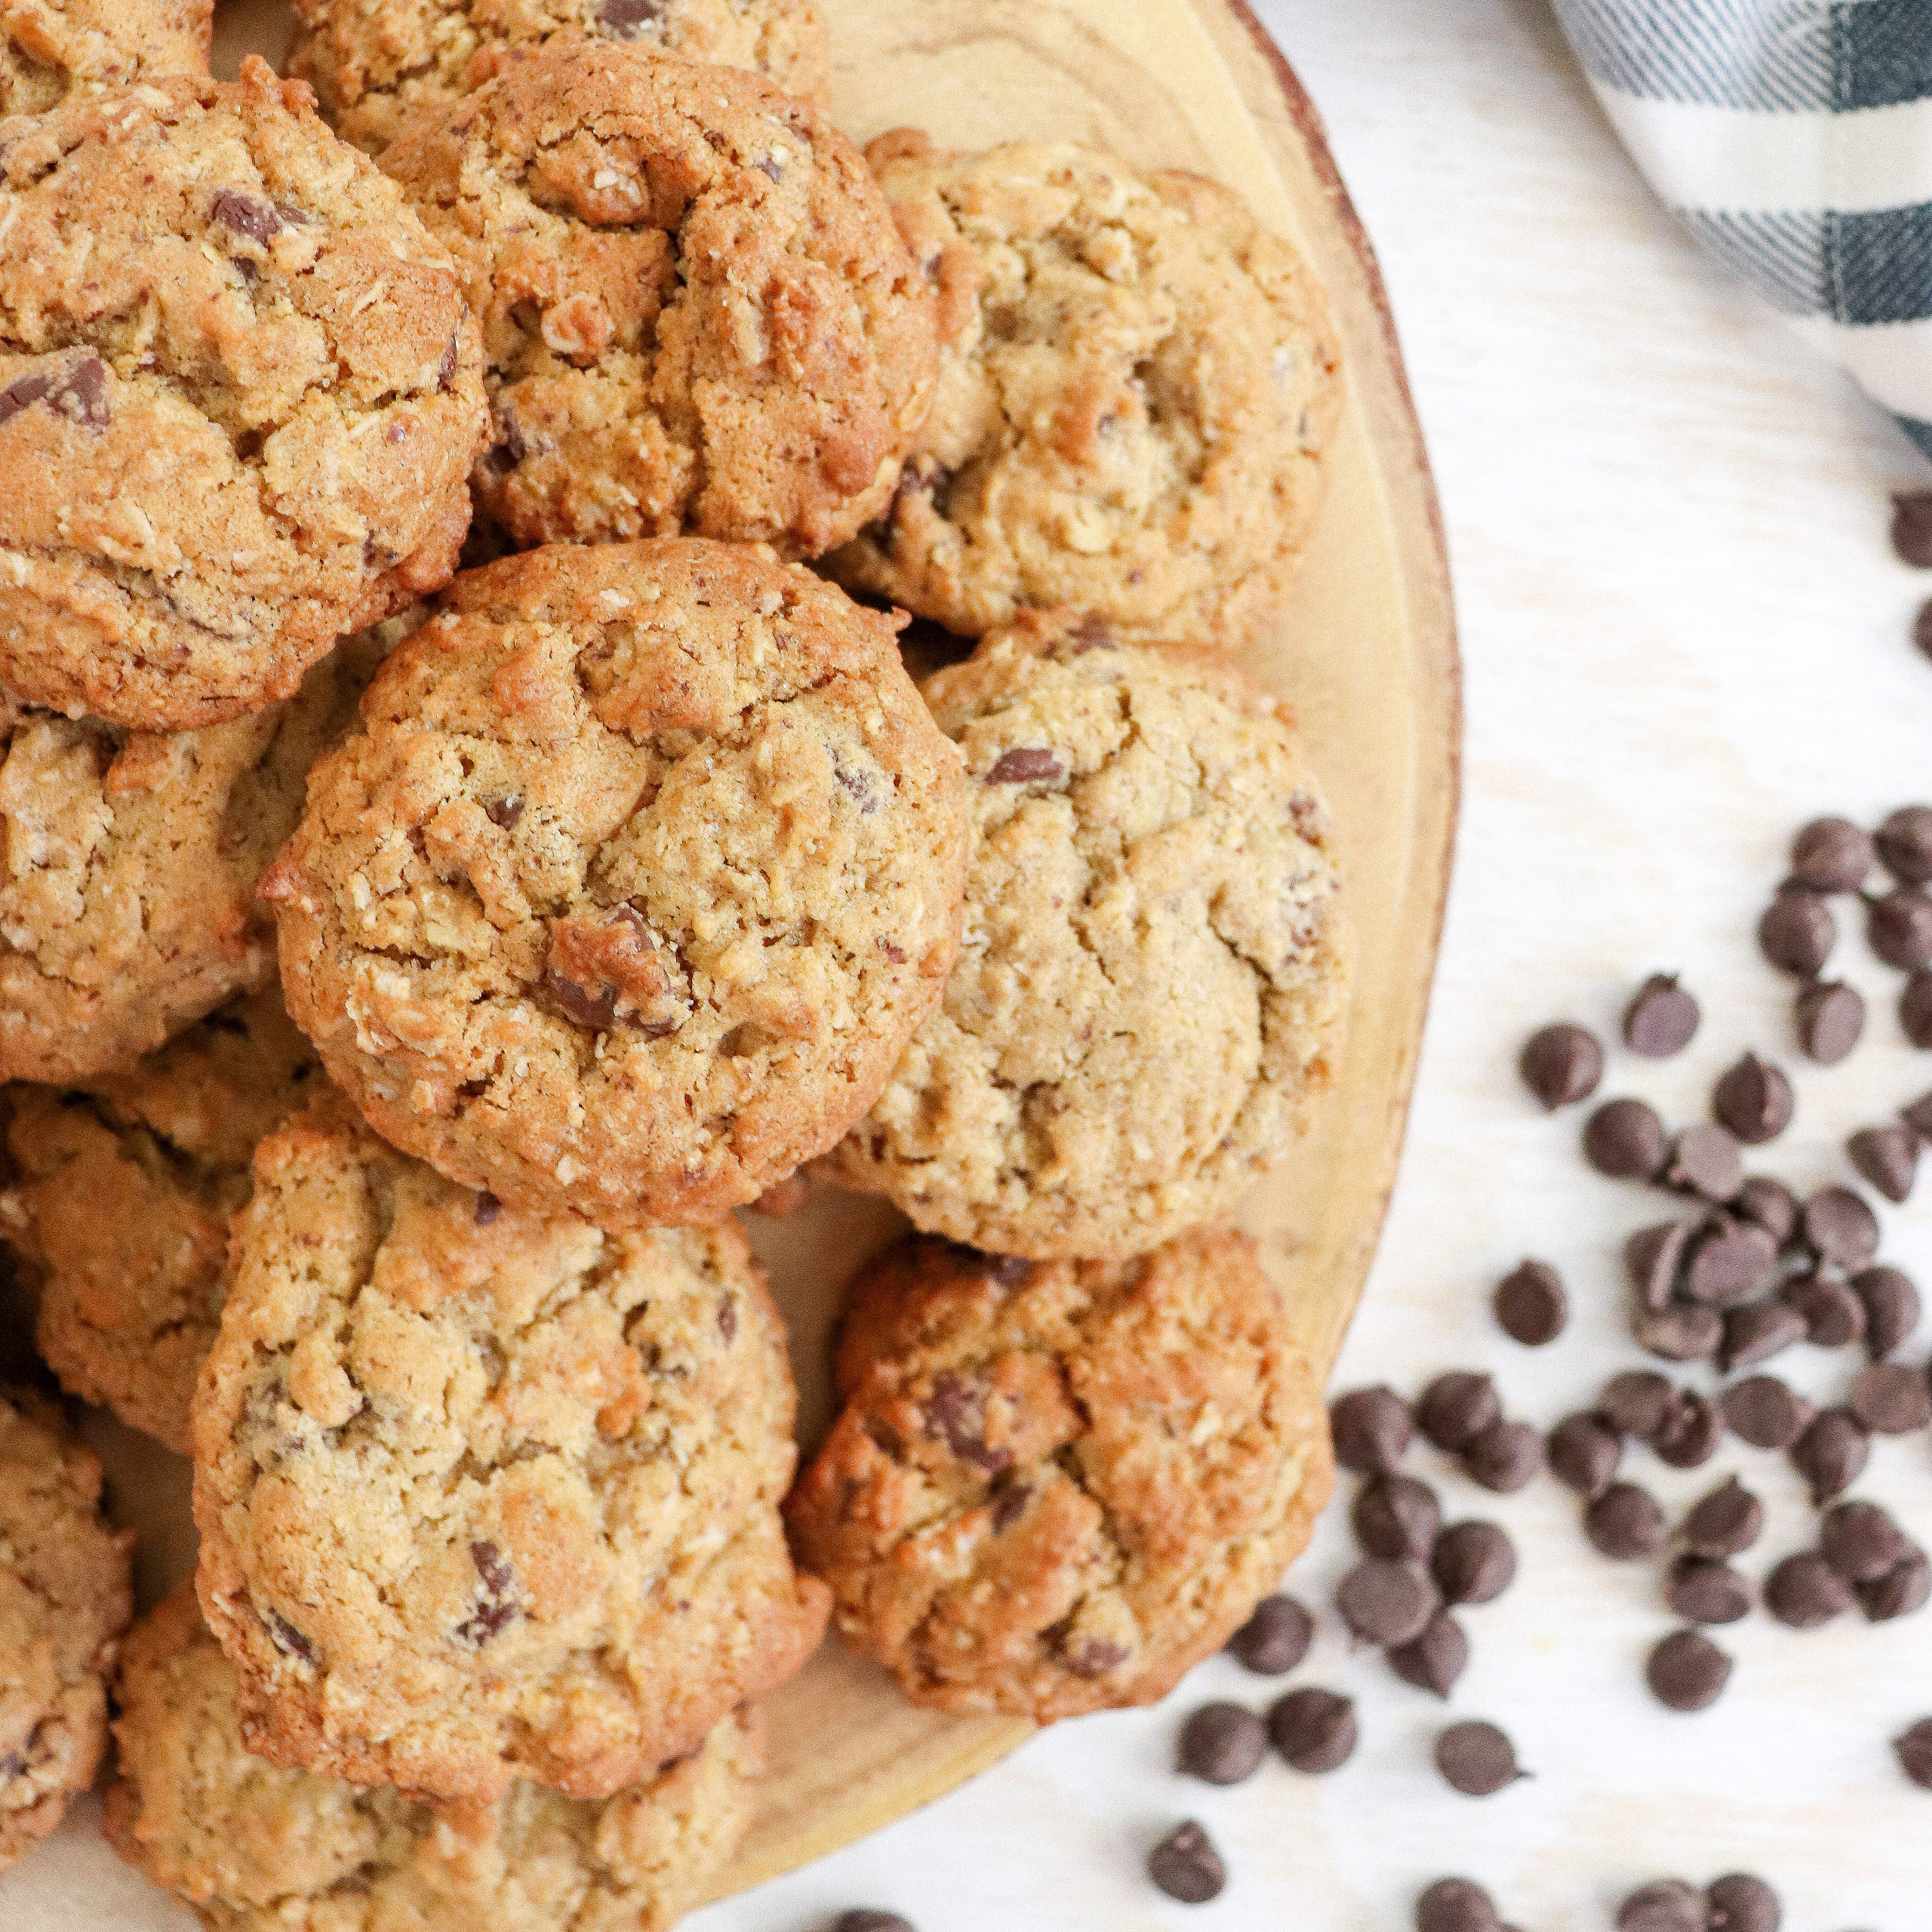 Oat Chocolate Chip Lactation Cookies